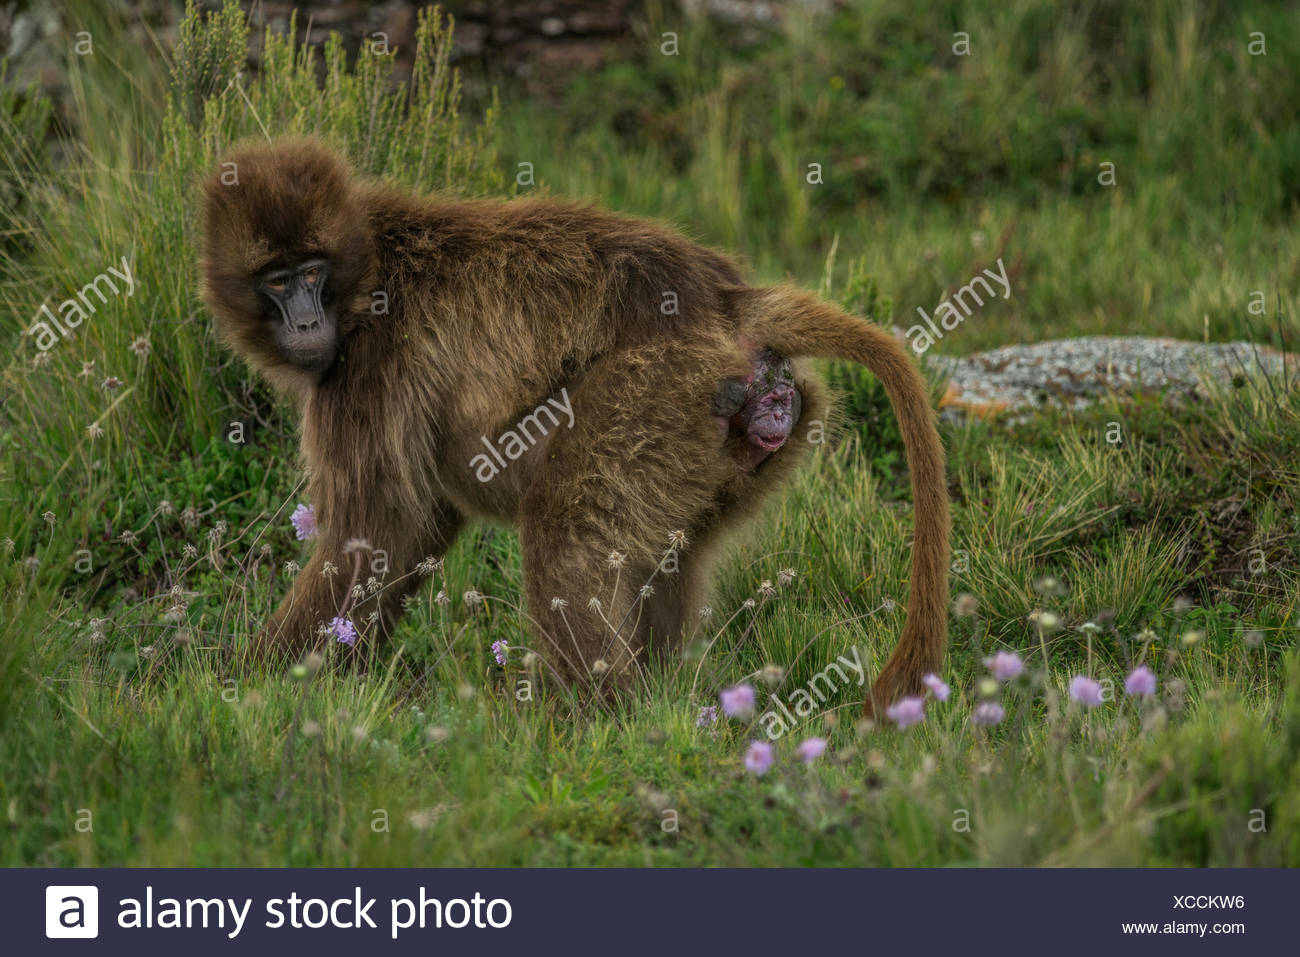 When giving birth, geladas often isolate themselves to avoid aggressive behavior from other monkeys and remain silent in an effort to evade predators. - Stock Image